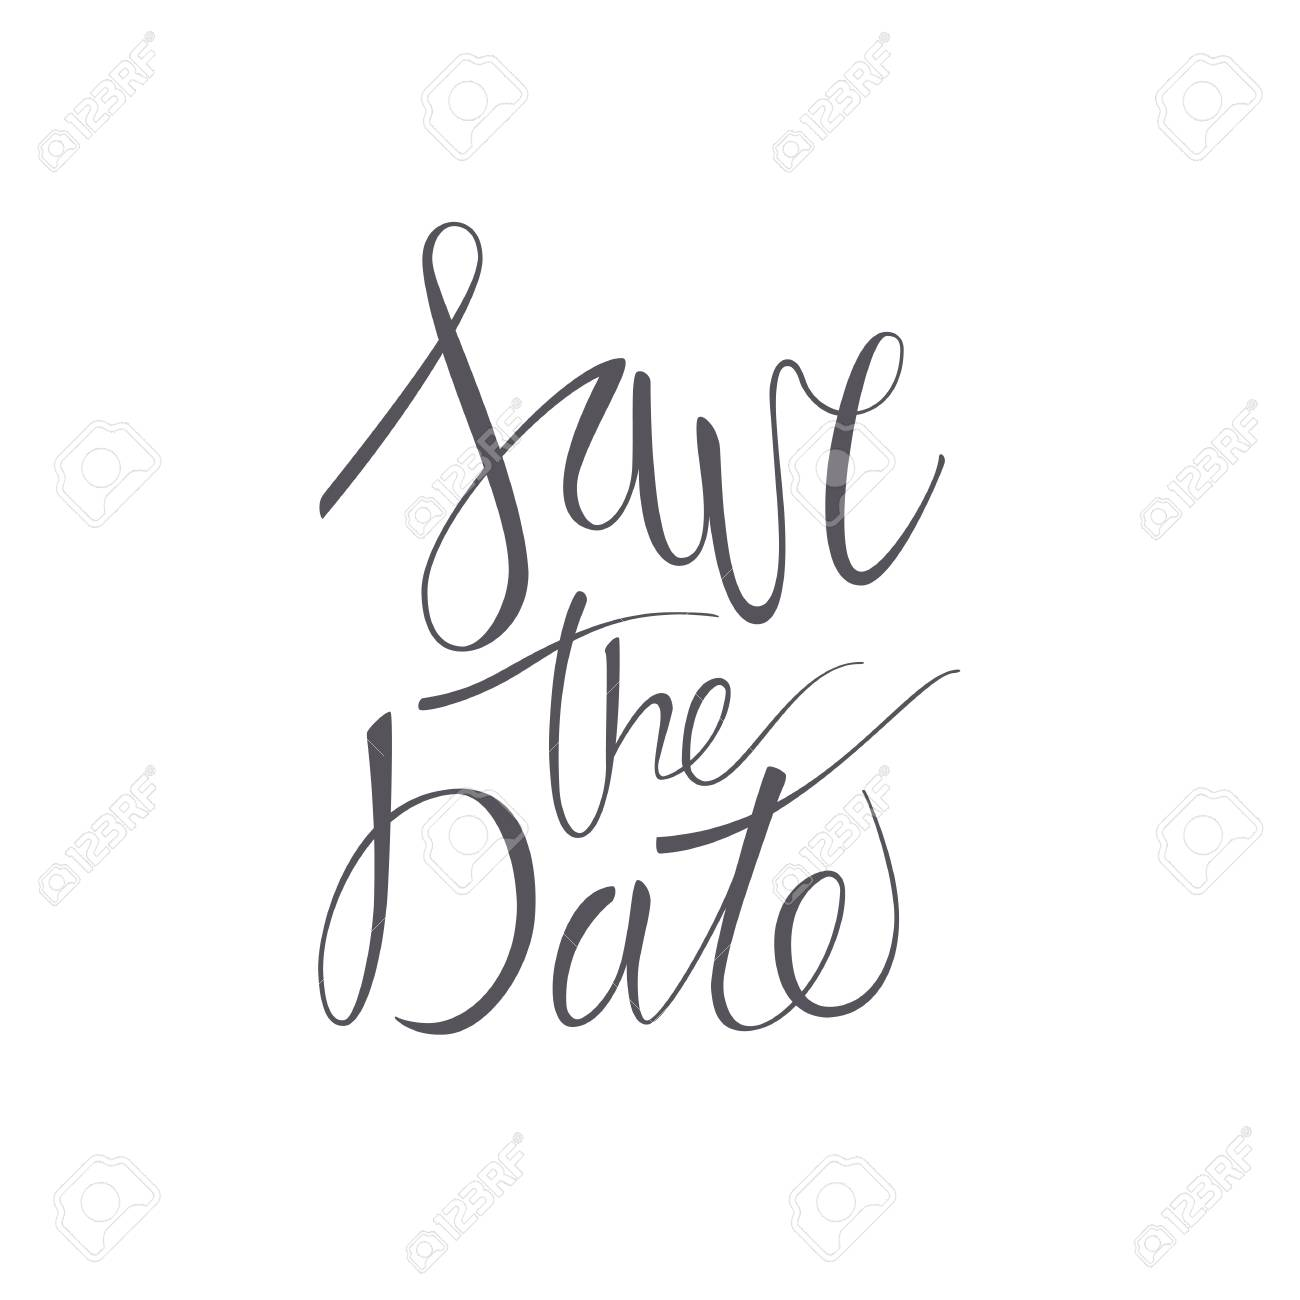 save the date vector lettering text on white background hand written decorative design words